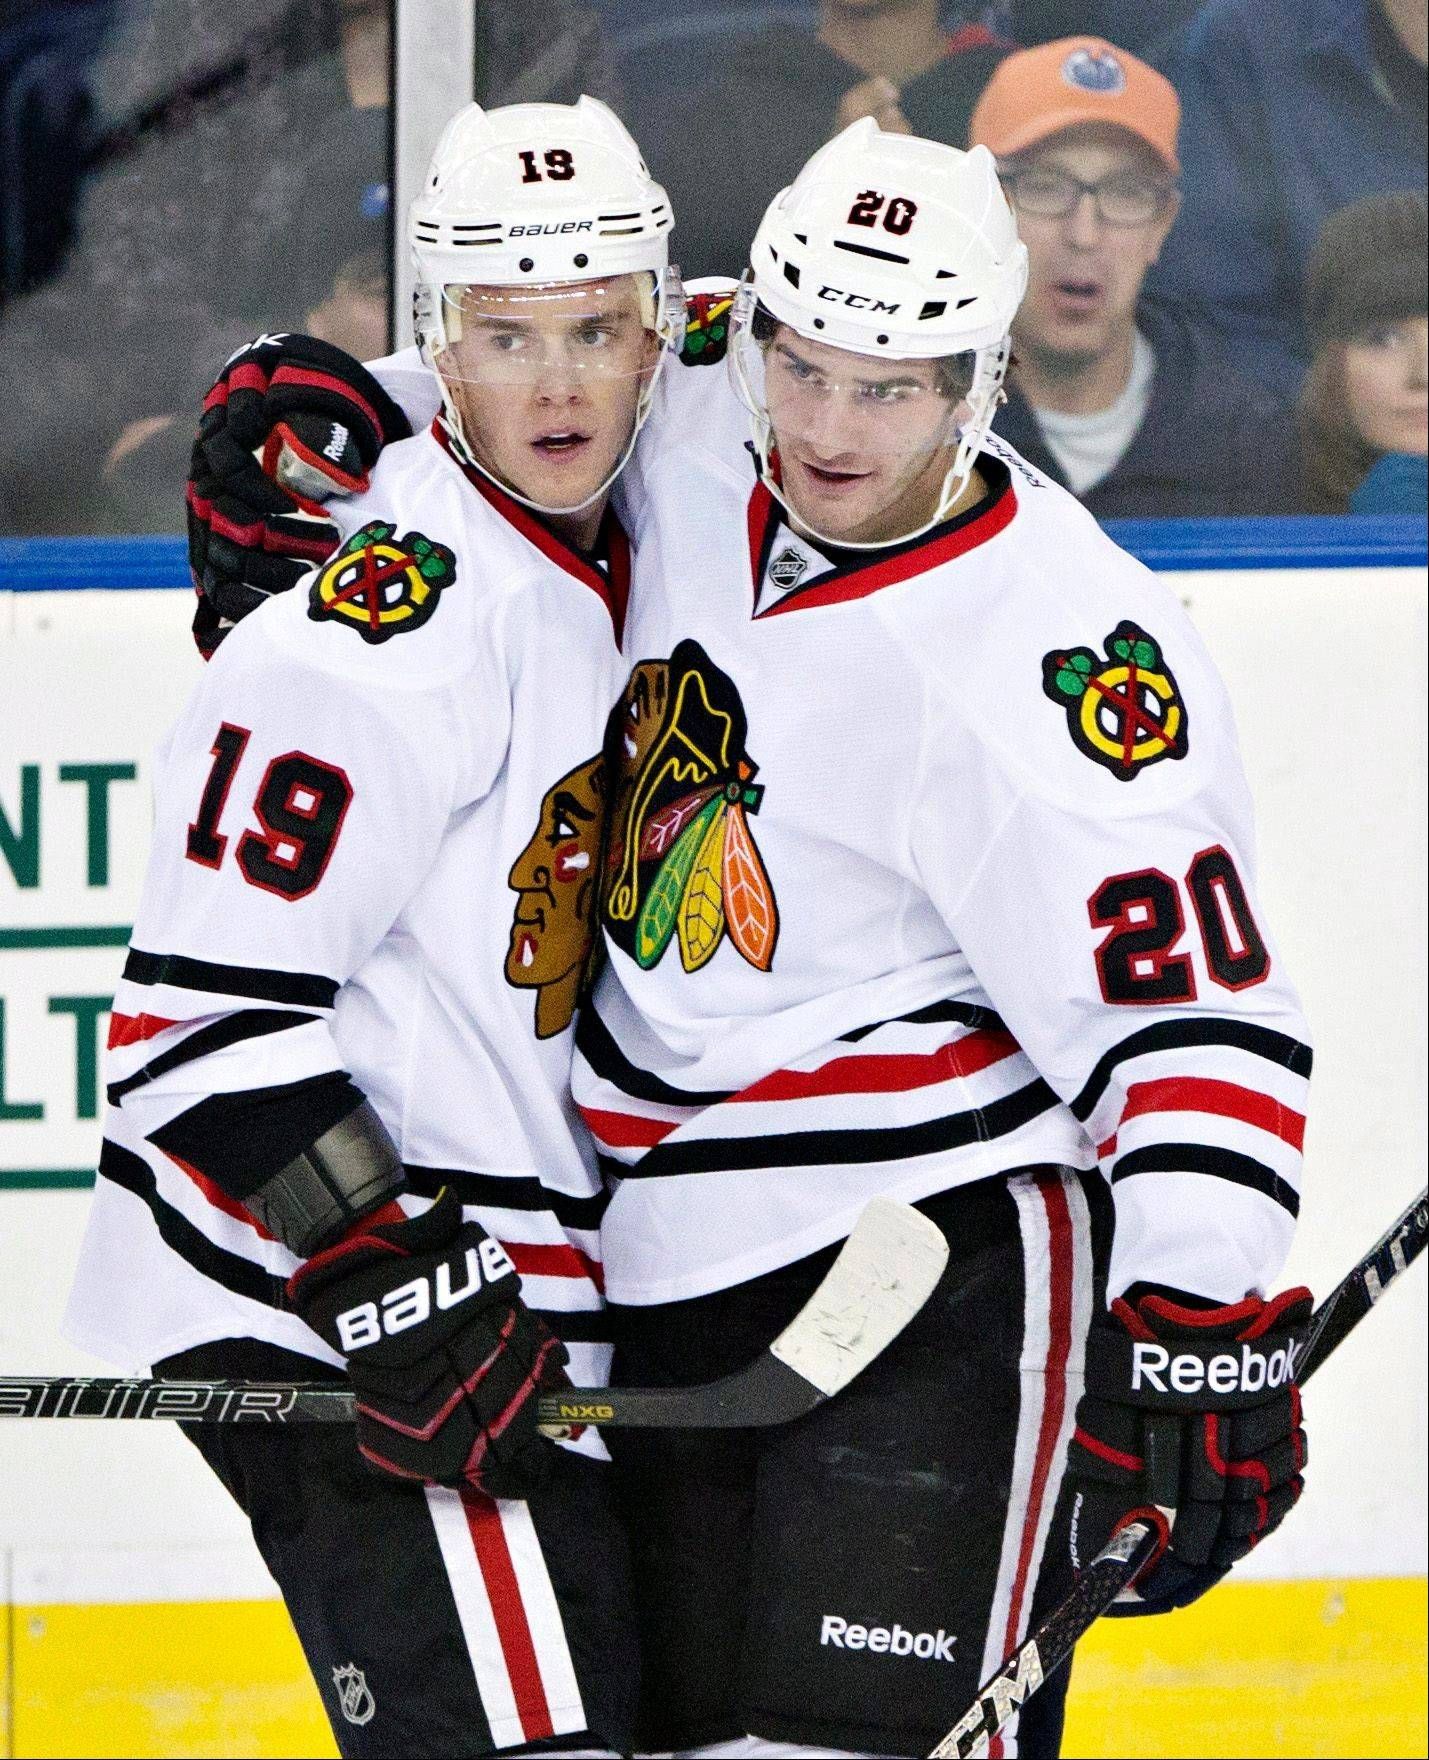 Chicago Blackhawks' Jonathan Toews (19) and Brandon Saad celebrate a goal on the Edmonton Oilers during the first period of their NHL hockey game in Edmonton, Alberta, Wednesday, April 24, 2013.